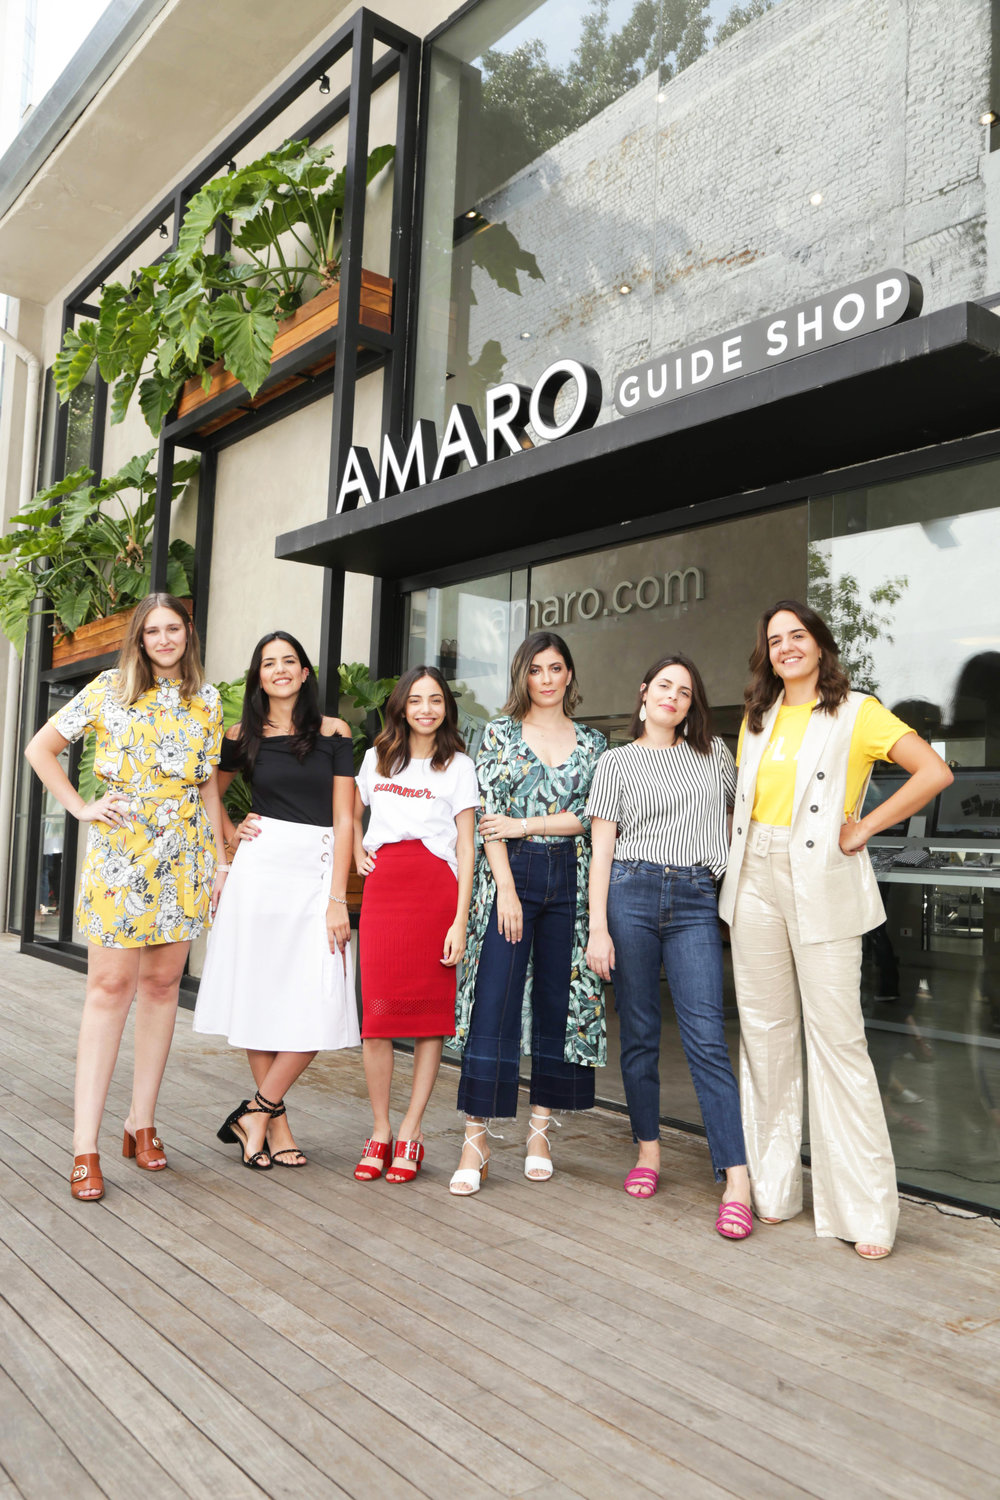 From left to right: Luisa Fleury, Ana Fraia, Giovana Marçon, Camila Rocha, Nathalia Henriques and Fernanda Jacob